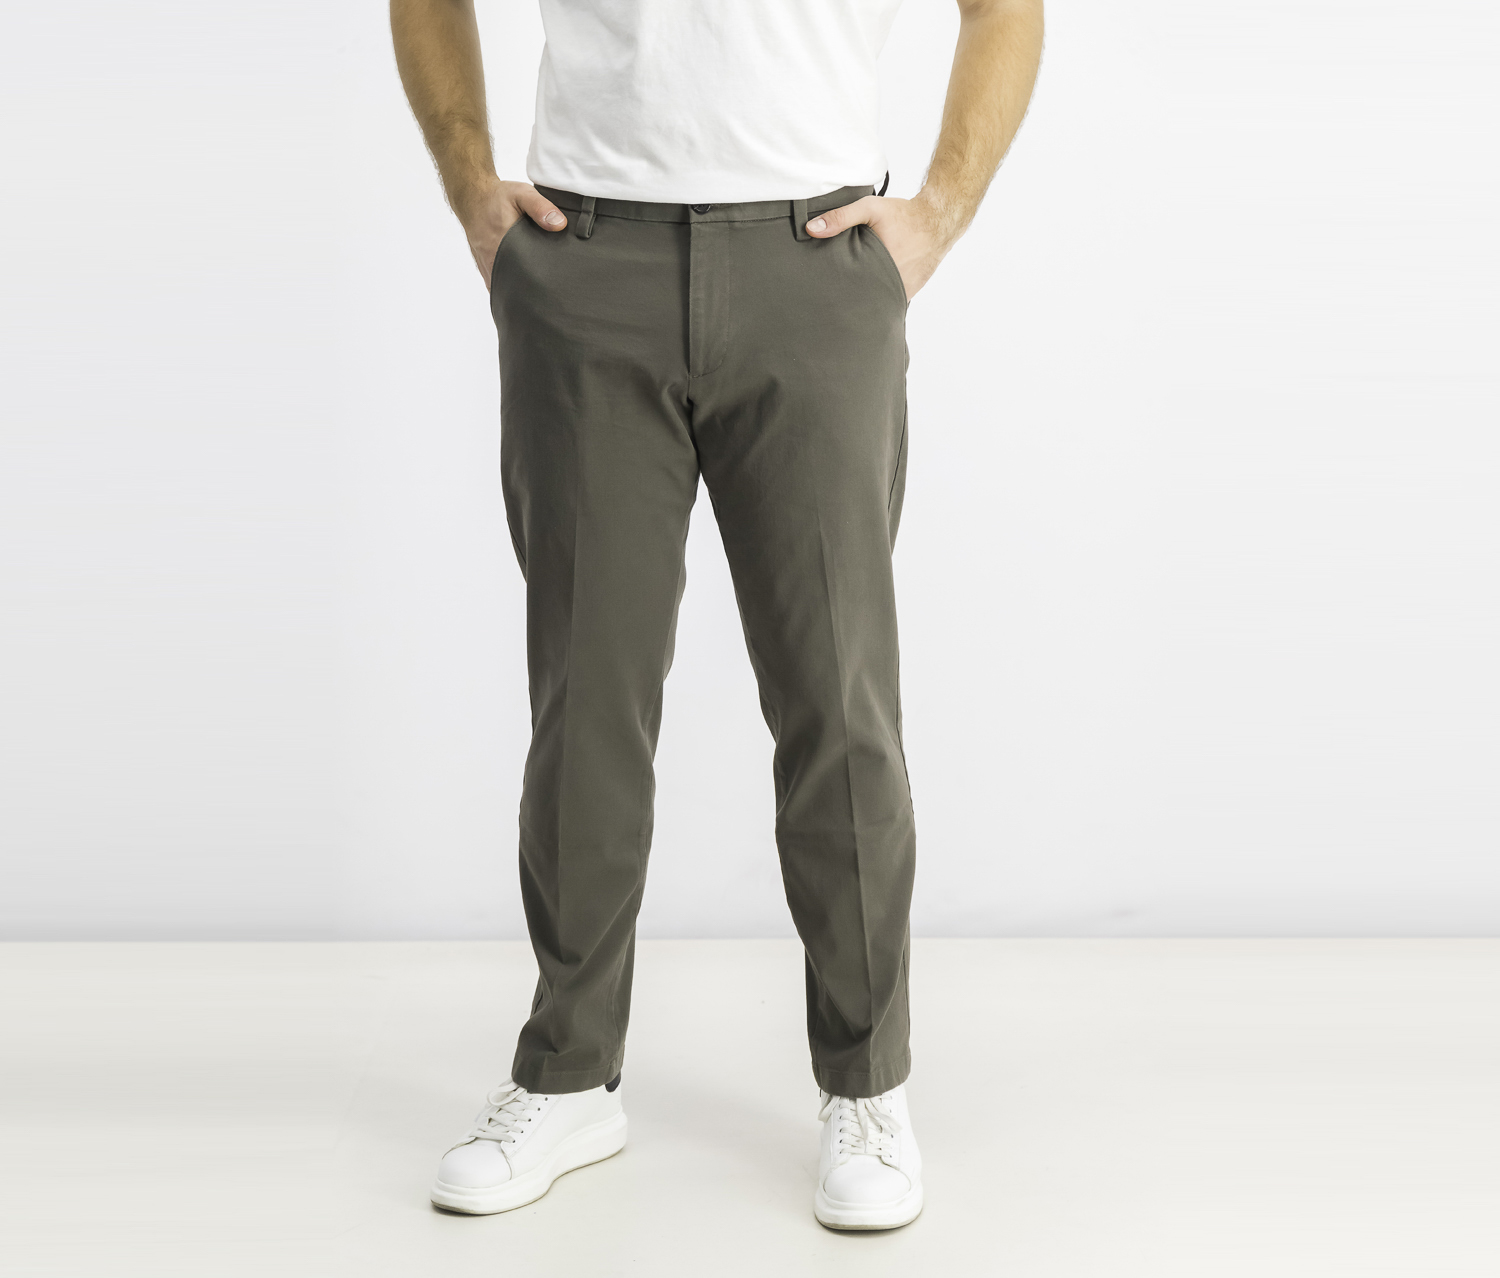 Straight Fit Workday Pant's, Khaki